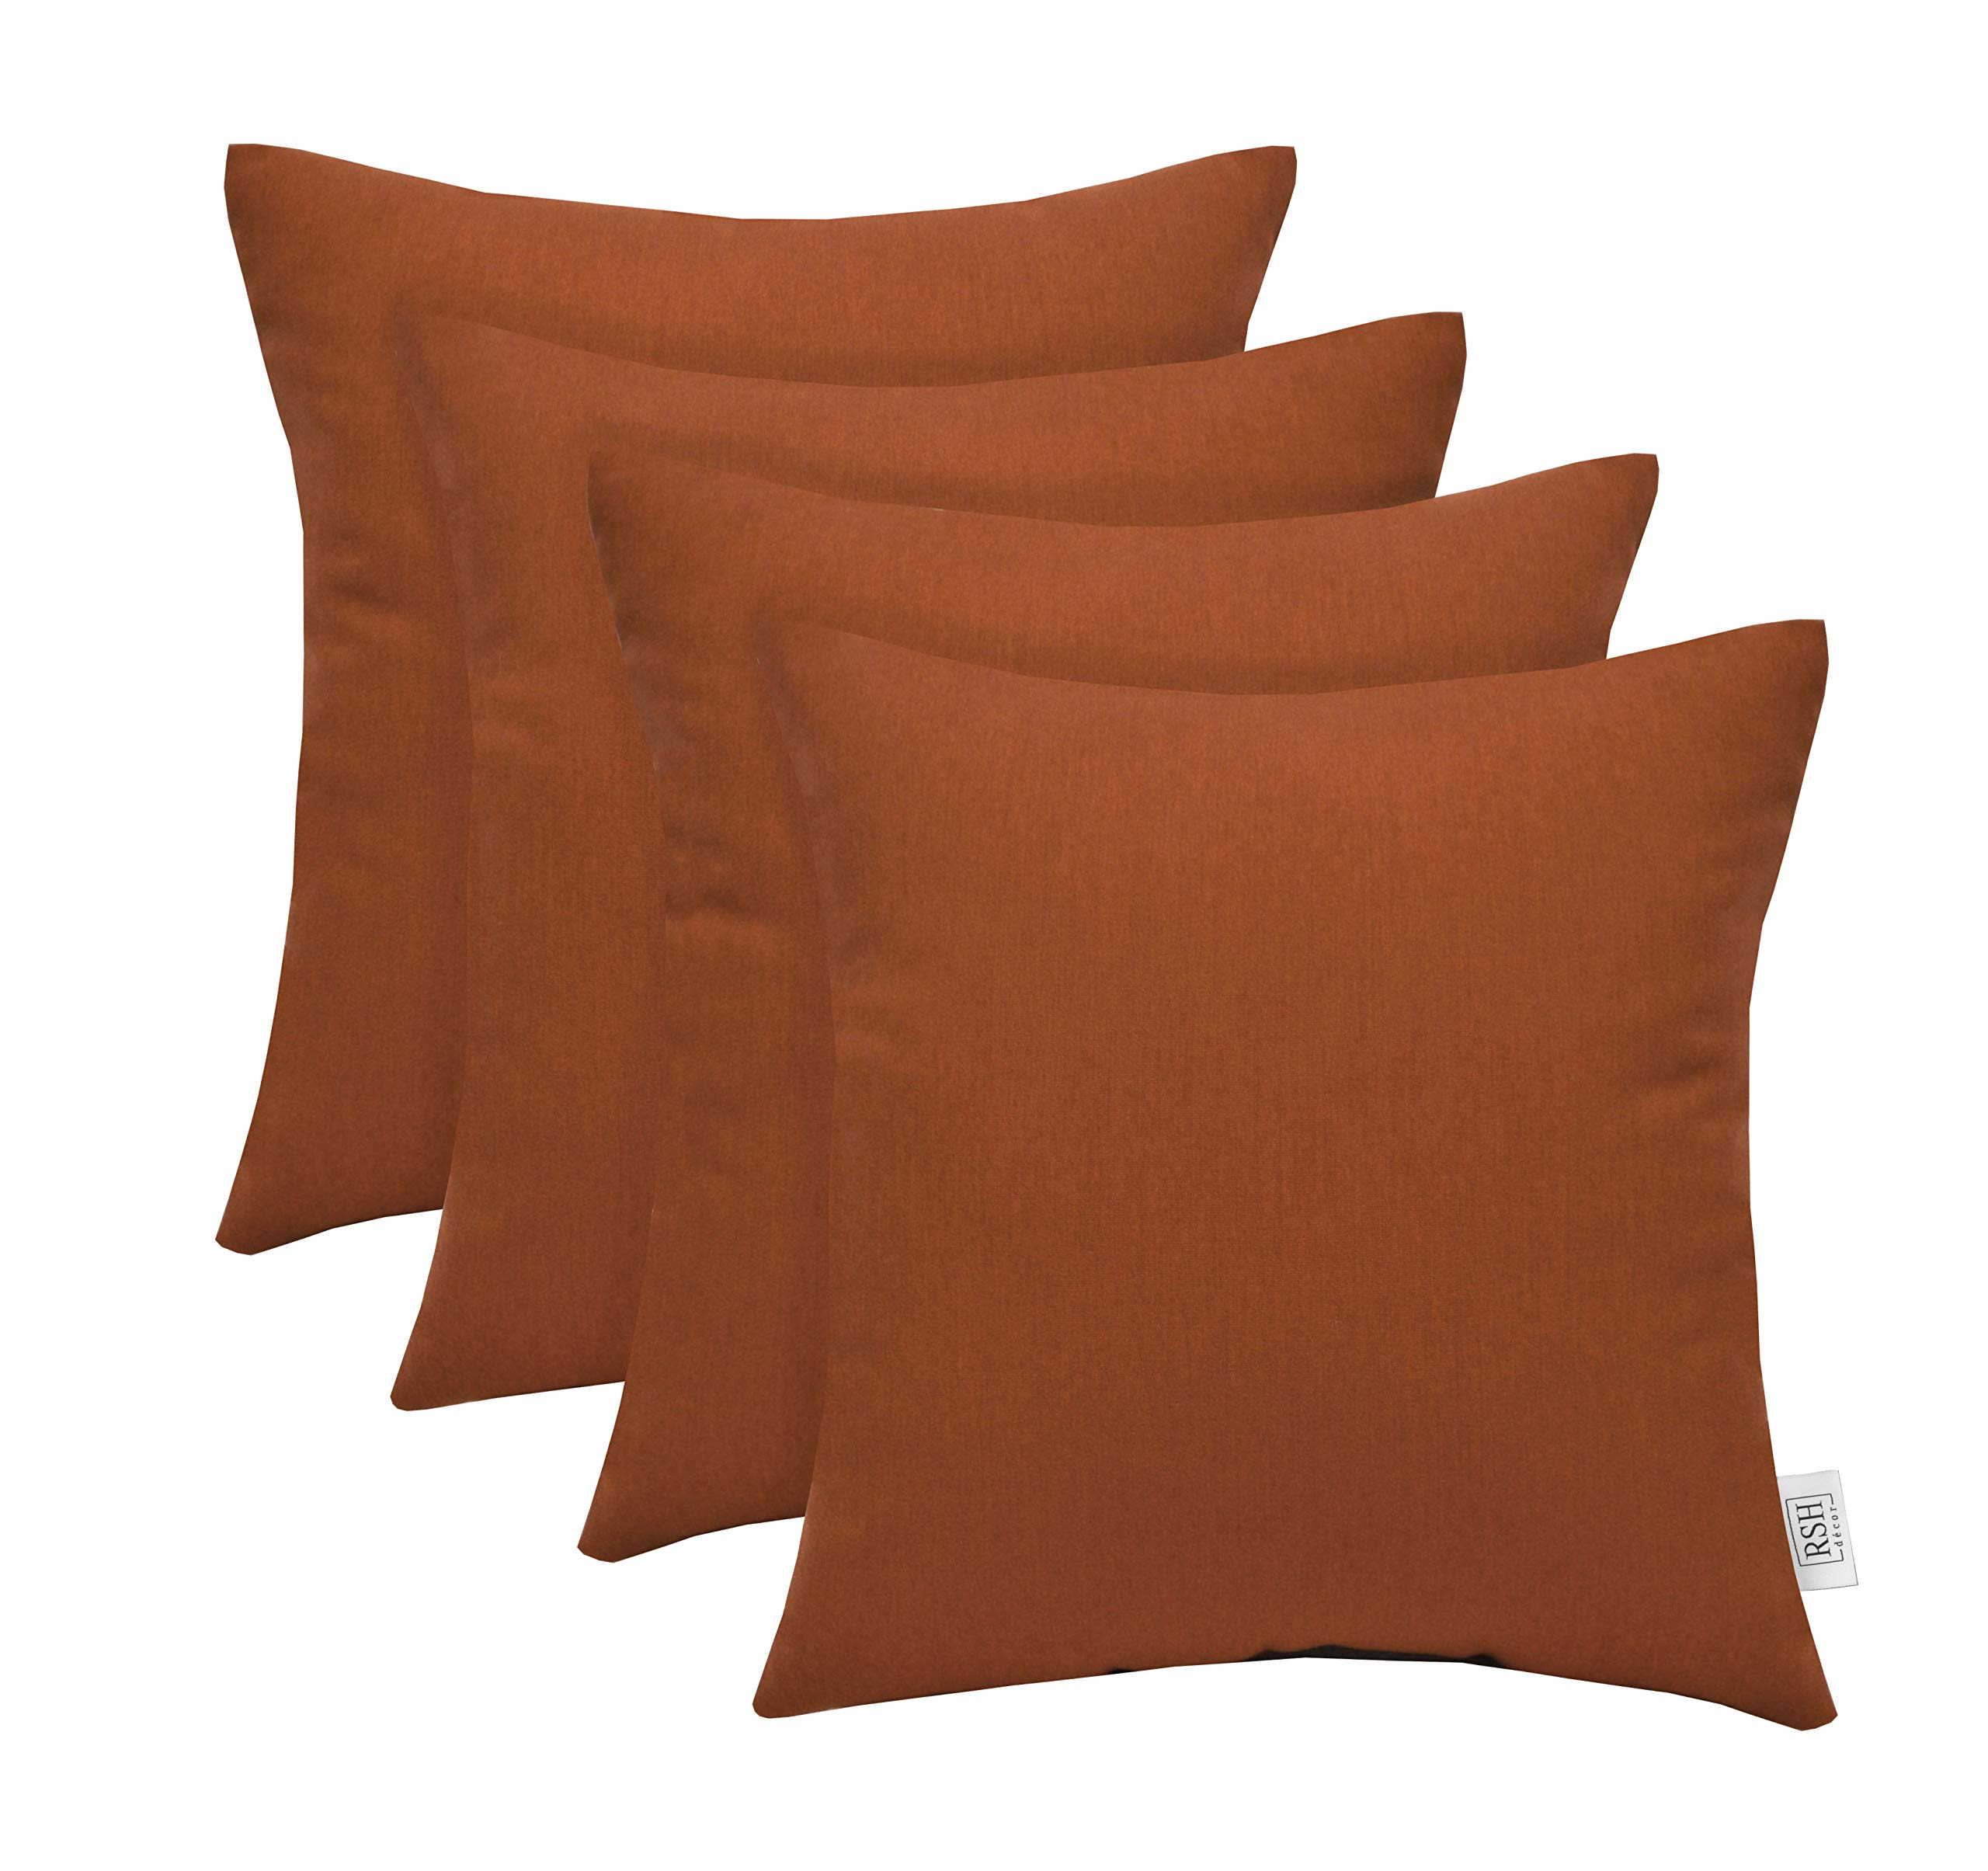 RSH Décor Set of 4 Indoor/Outdoor Square Throw Pillows Sunbrella Canvas Rust (17'' x 17'')